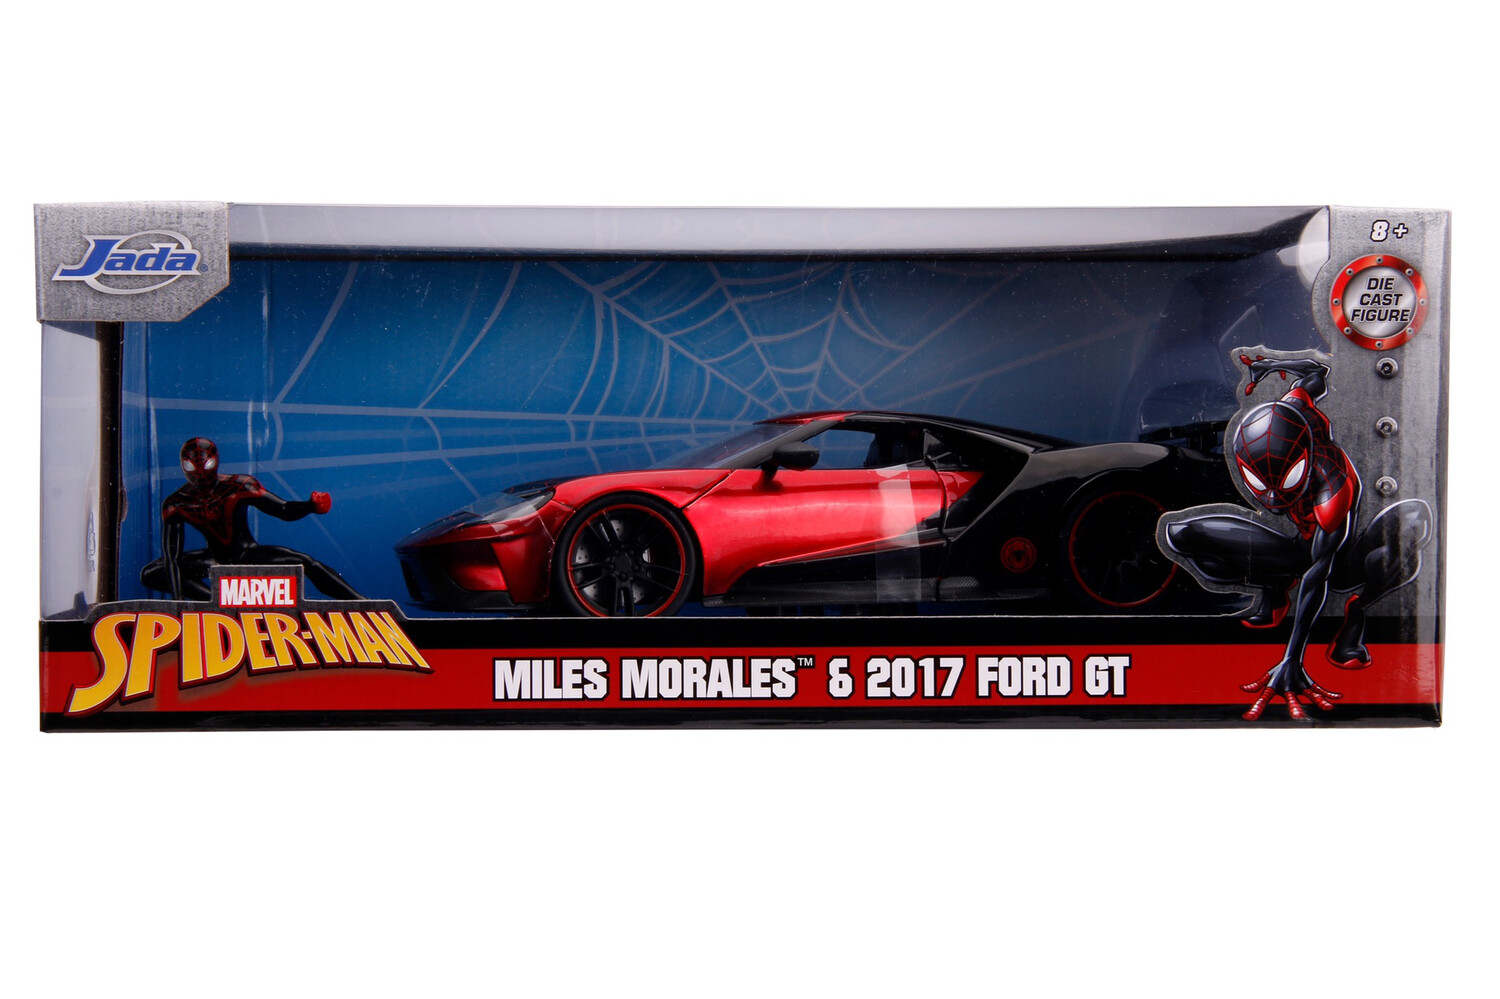 2017 Ford GT Miles Morales